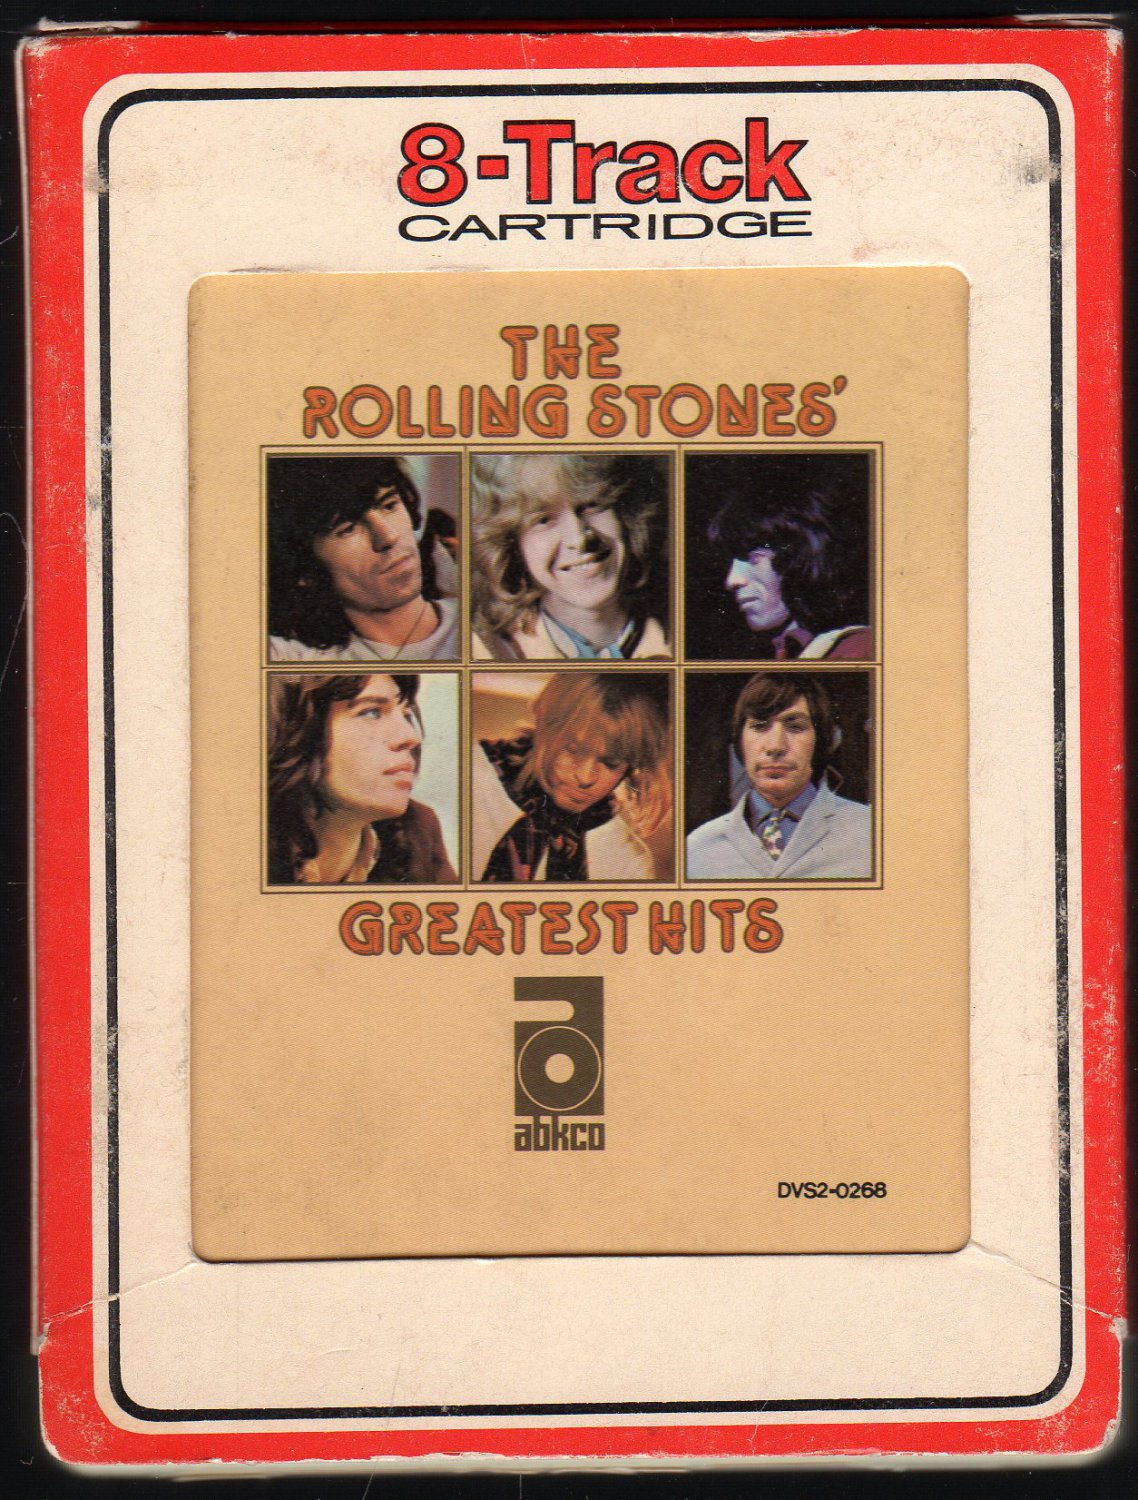 The Rolling Stones - 30 Greatest Hits 1977 RCA ABKCO AC1 8-track tape